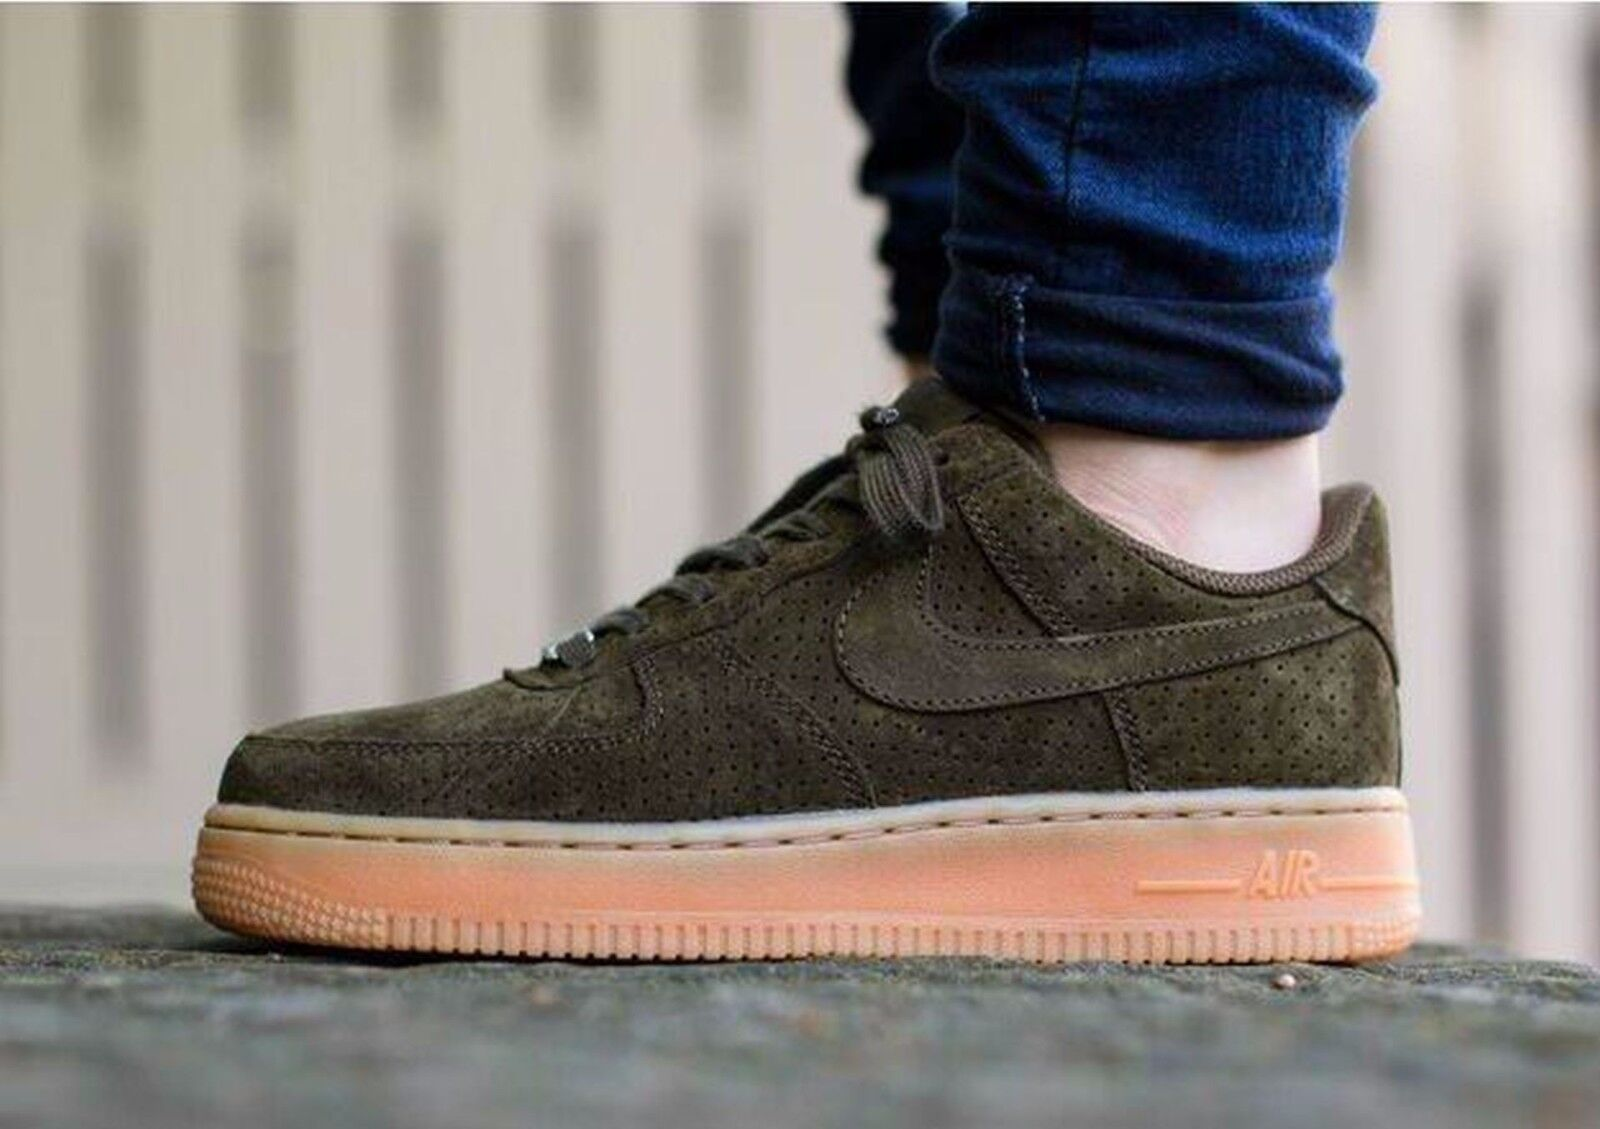 Nike air force 1 camoscio scuro loden, gomma wmns sz 749263-300